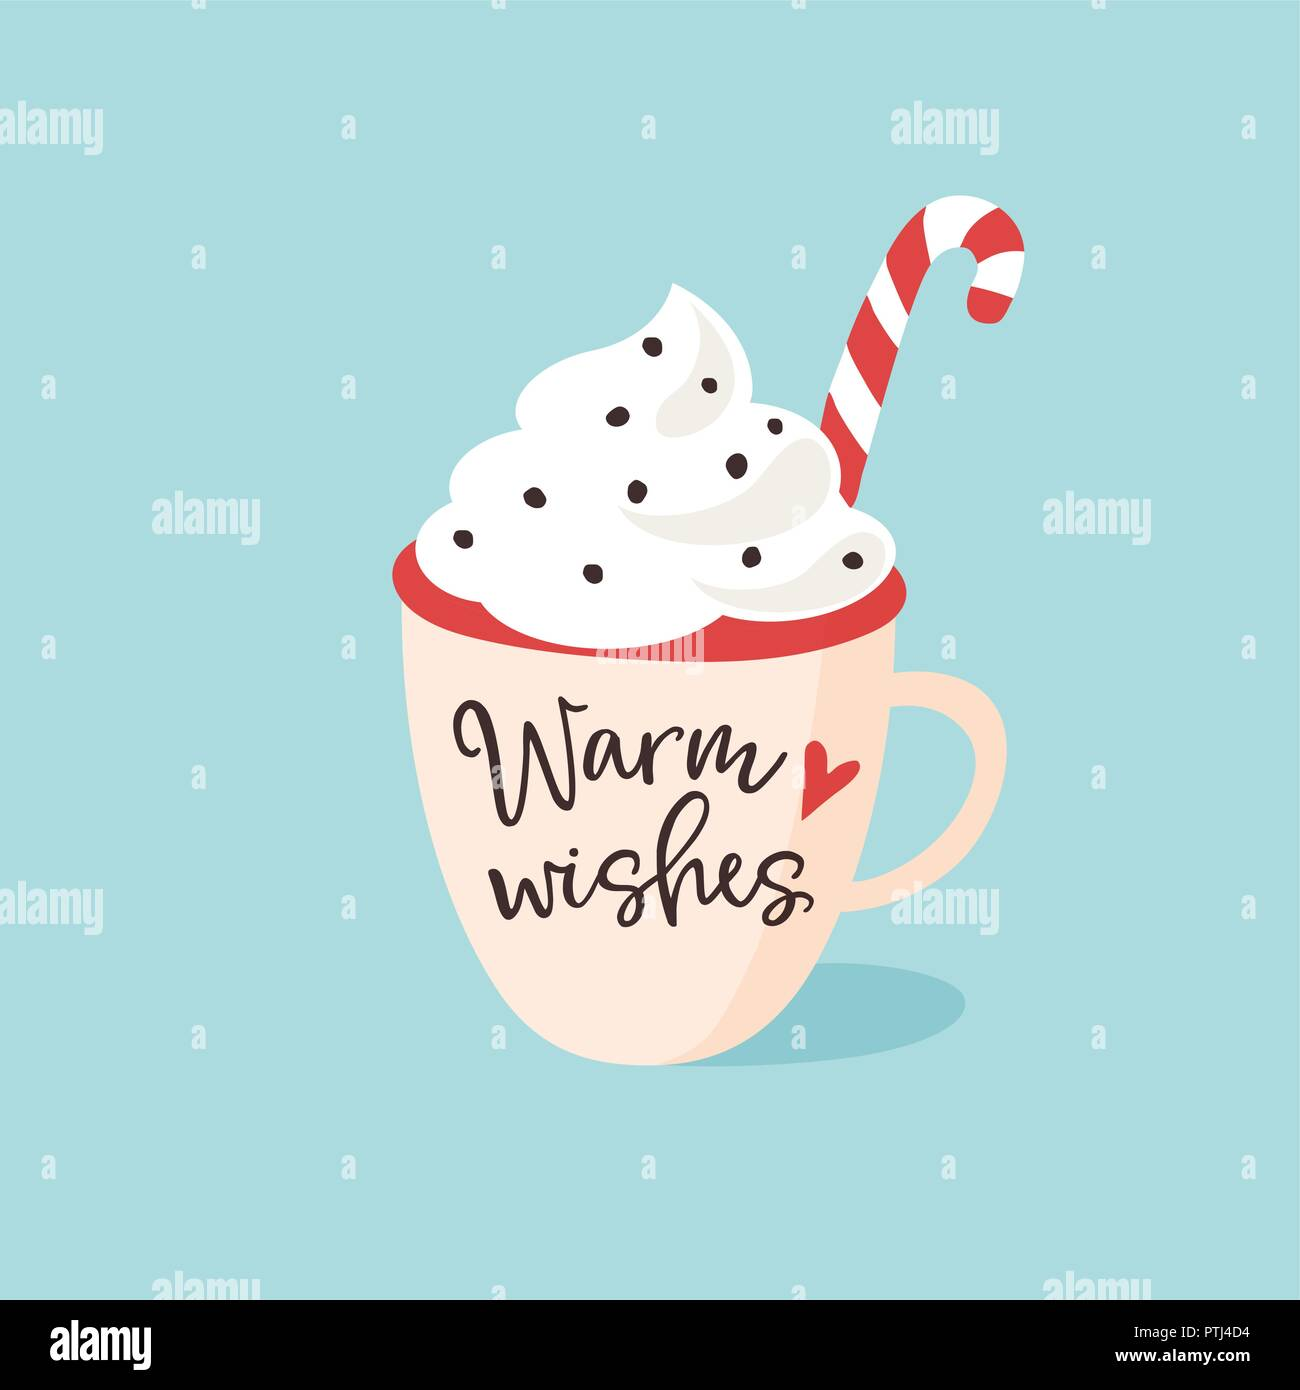 christmas new year greeting card invitation handwritten warm wishes text hand drawn cup of tea coffee or chocolate with cream and candy cane vin